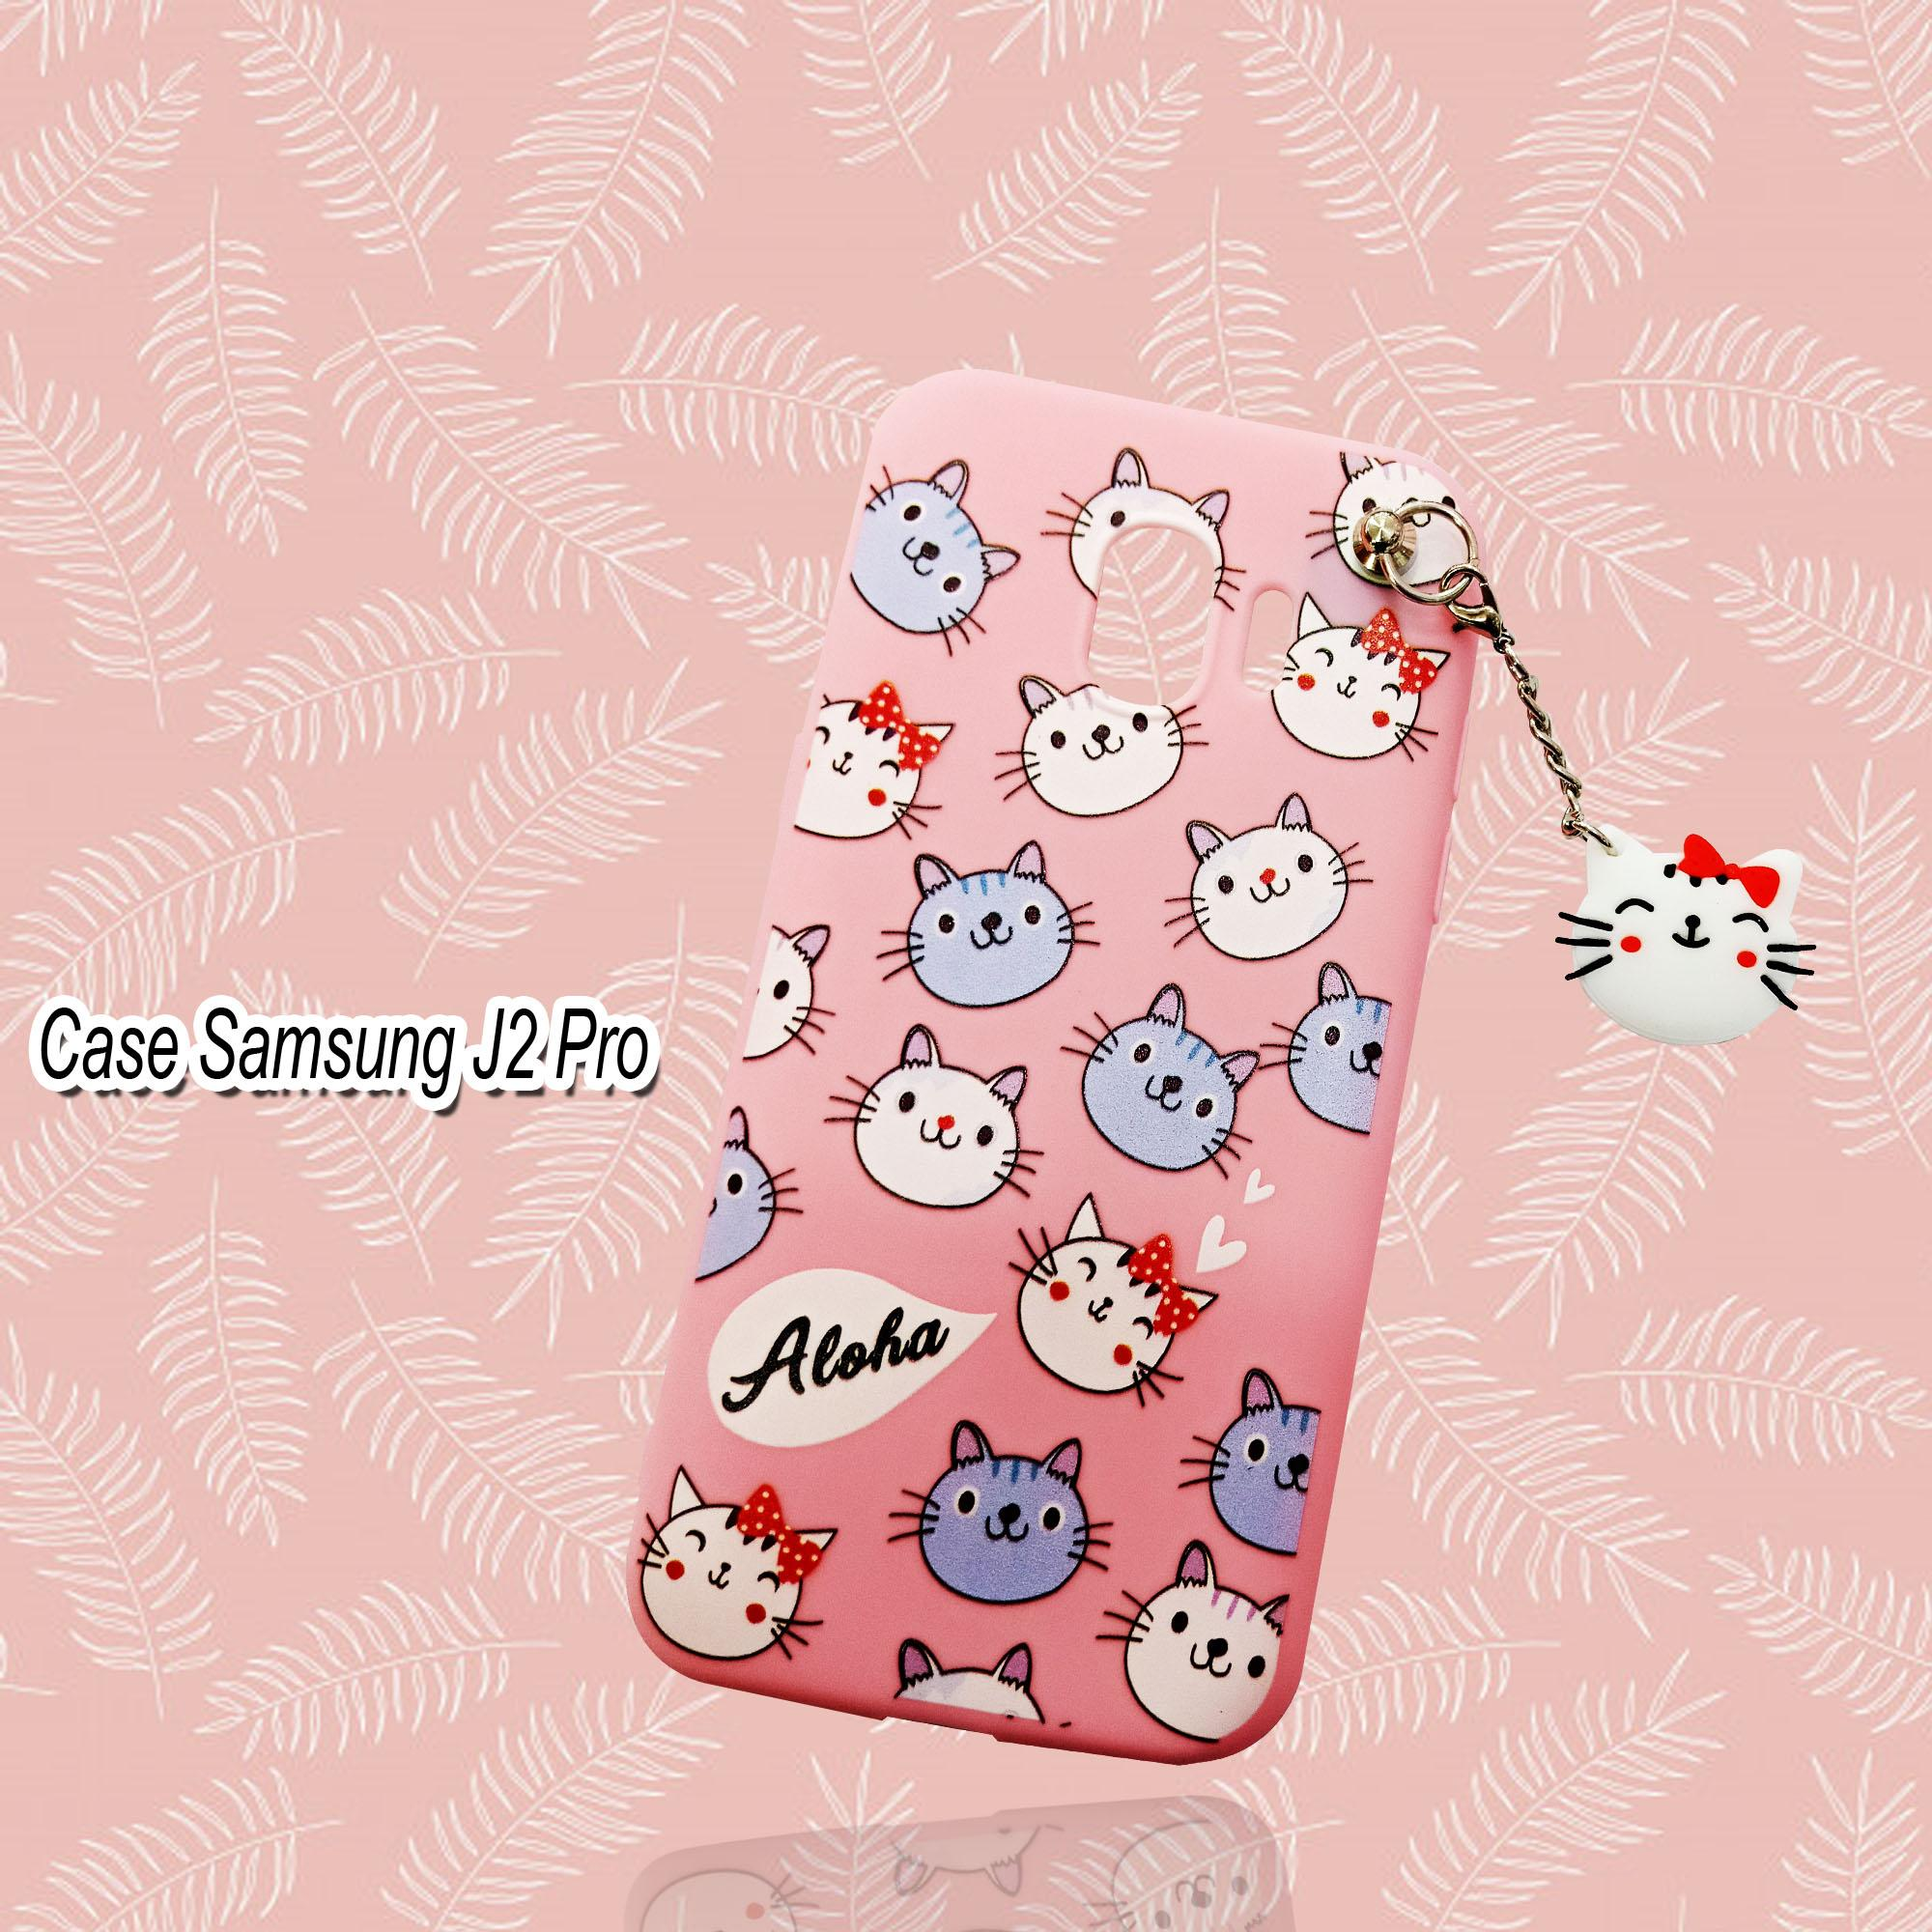 Marintri Case Samsung Galaxy J2 Pro 2018 New Fashion Cat Tumblr